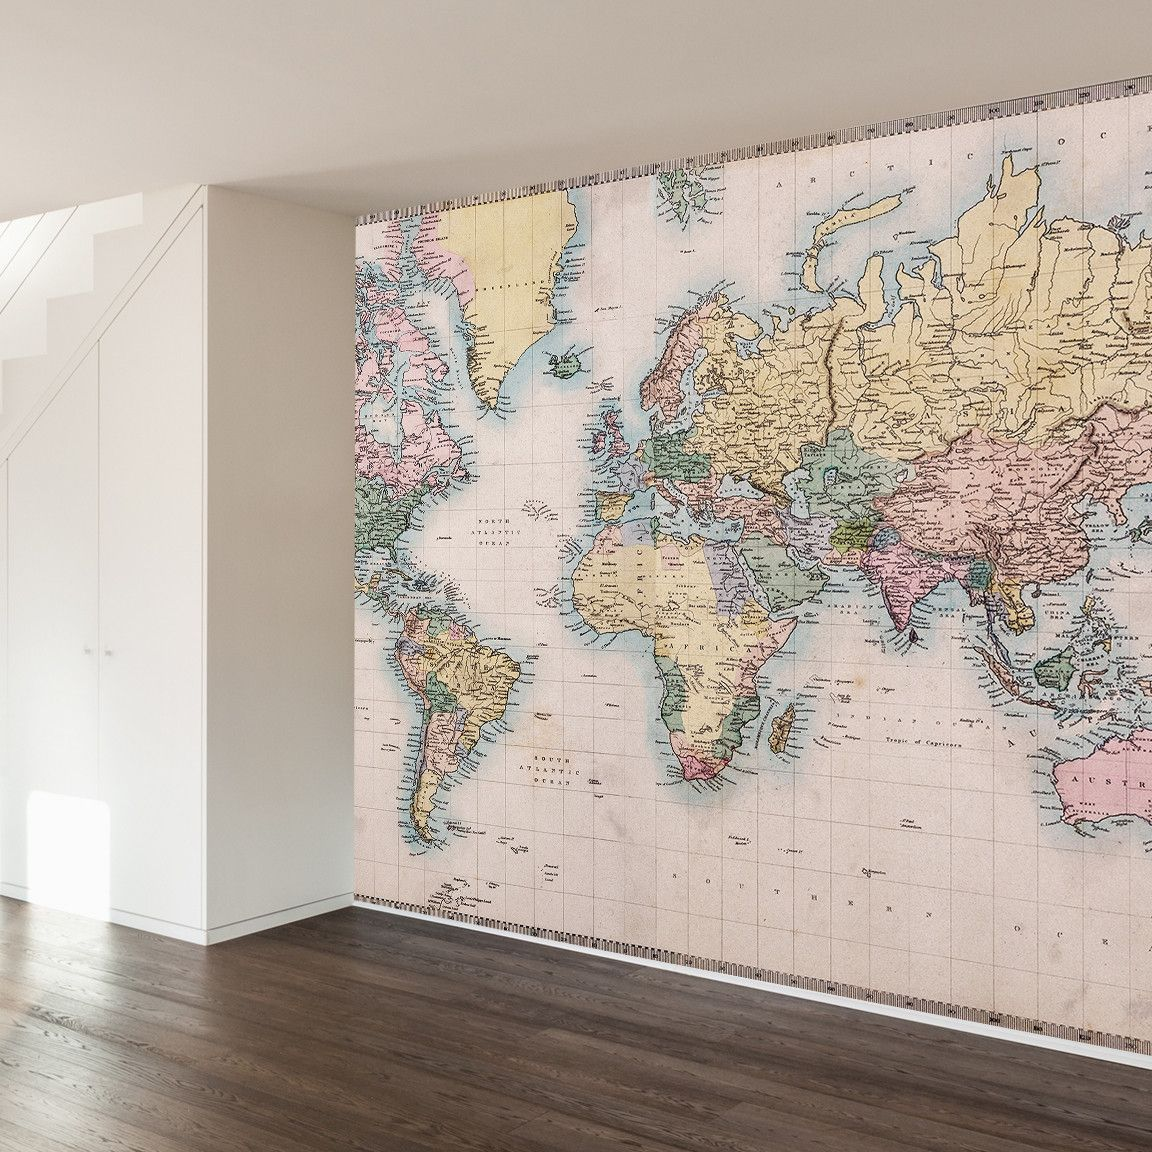 Map Wall Mural fashionable world map wall mural for any room throughout your home